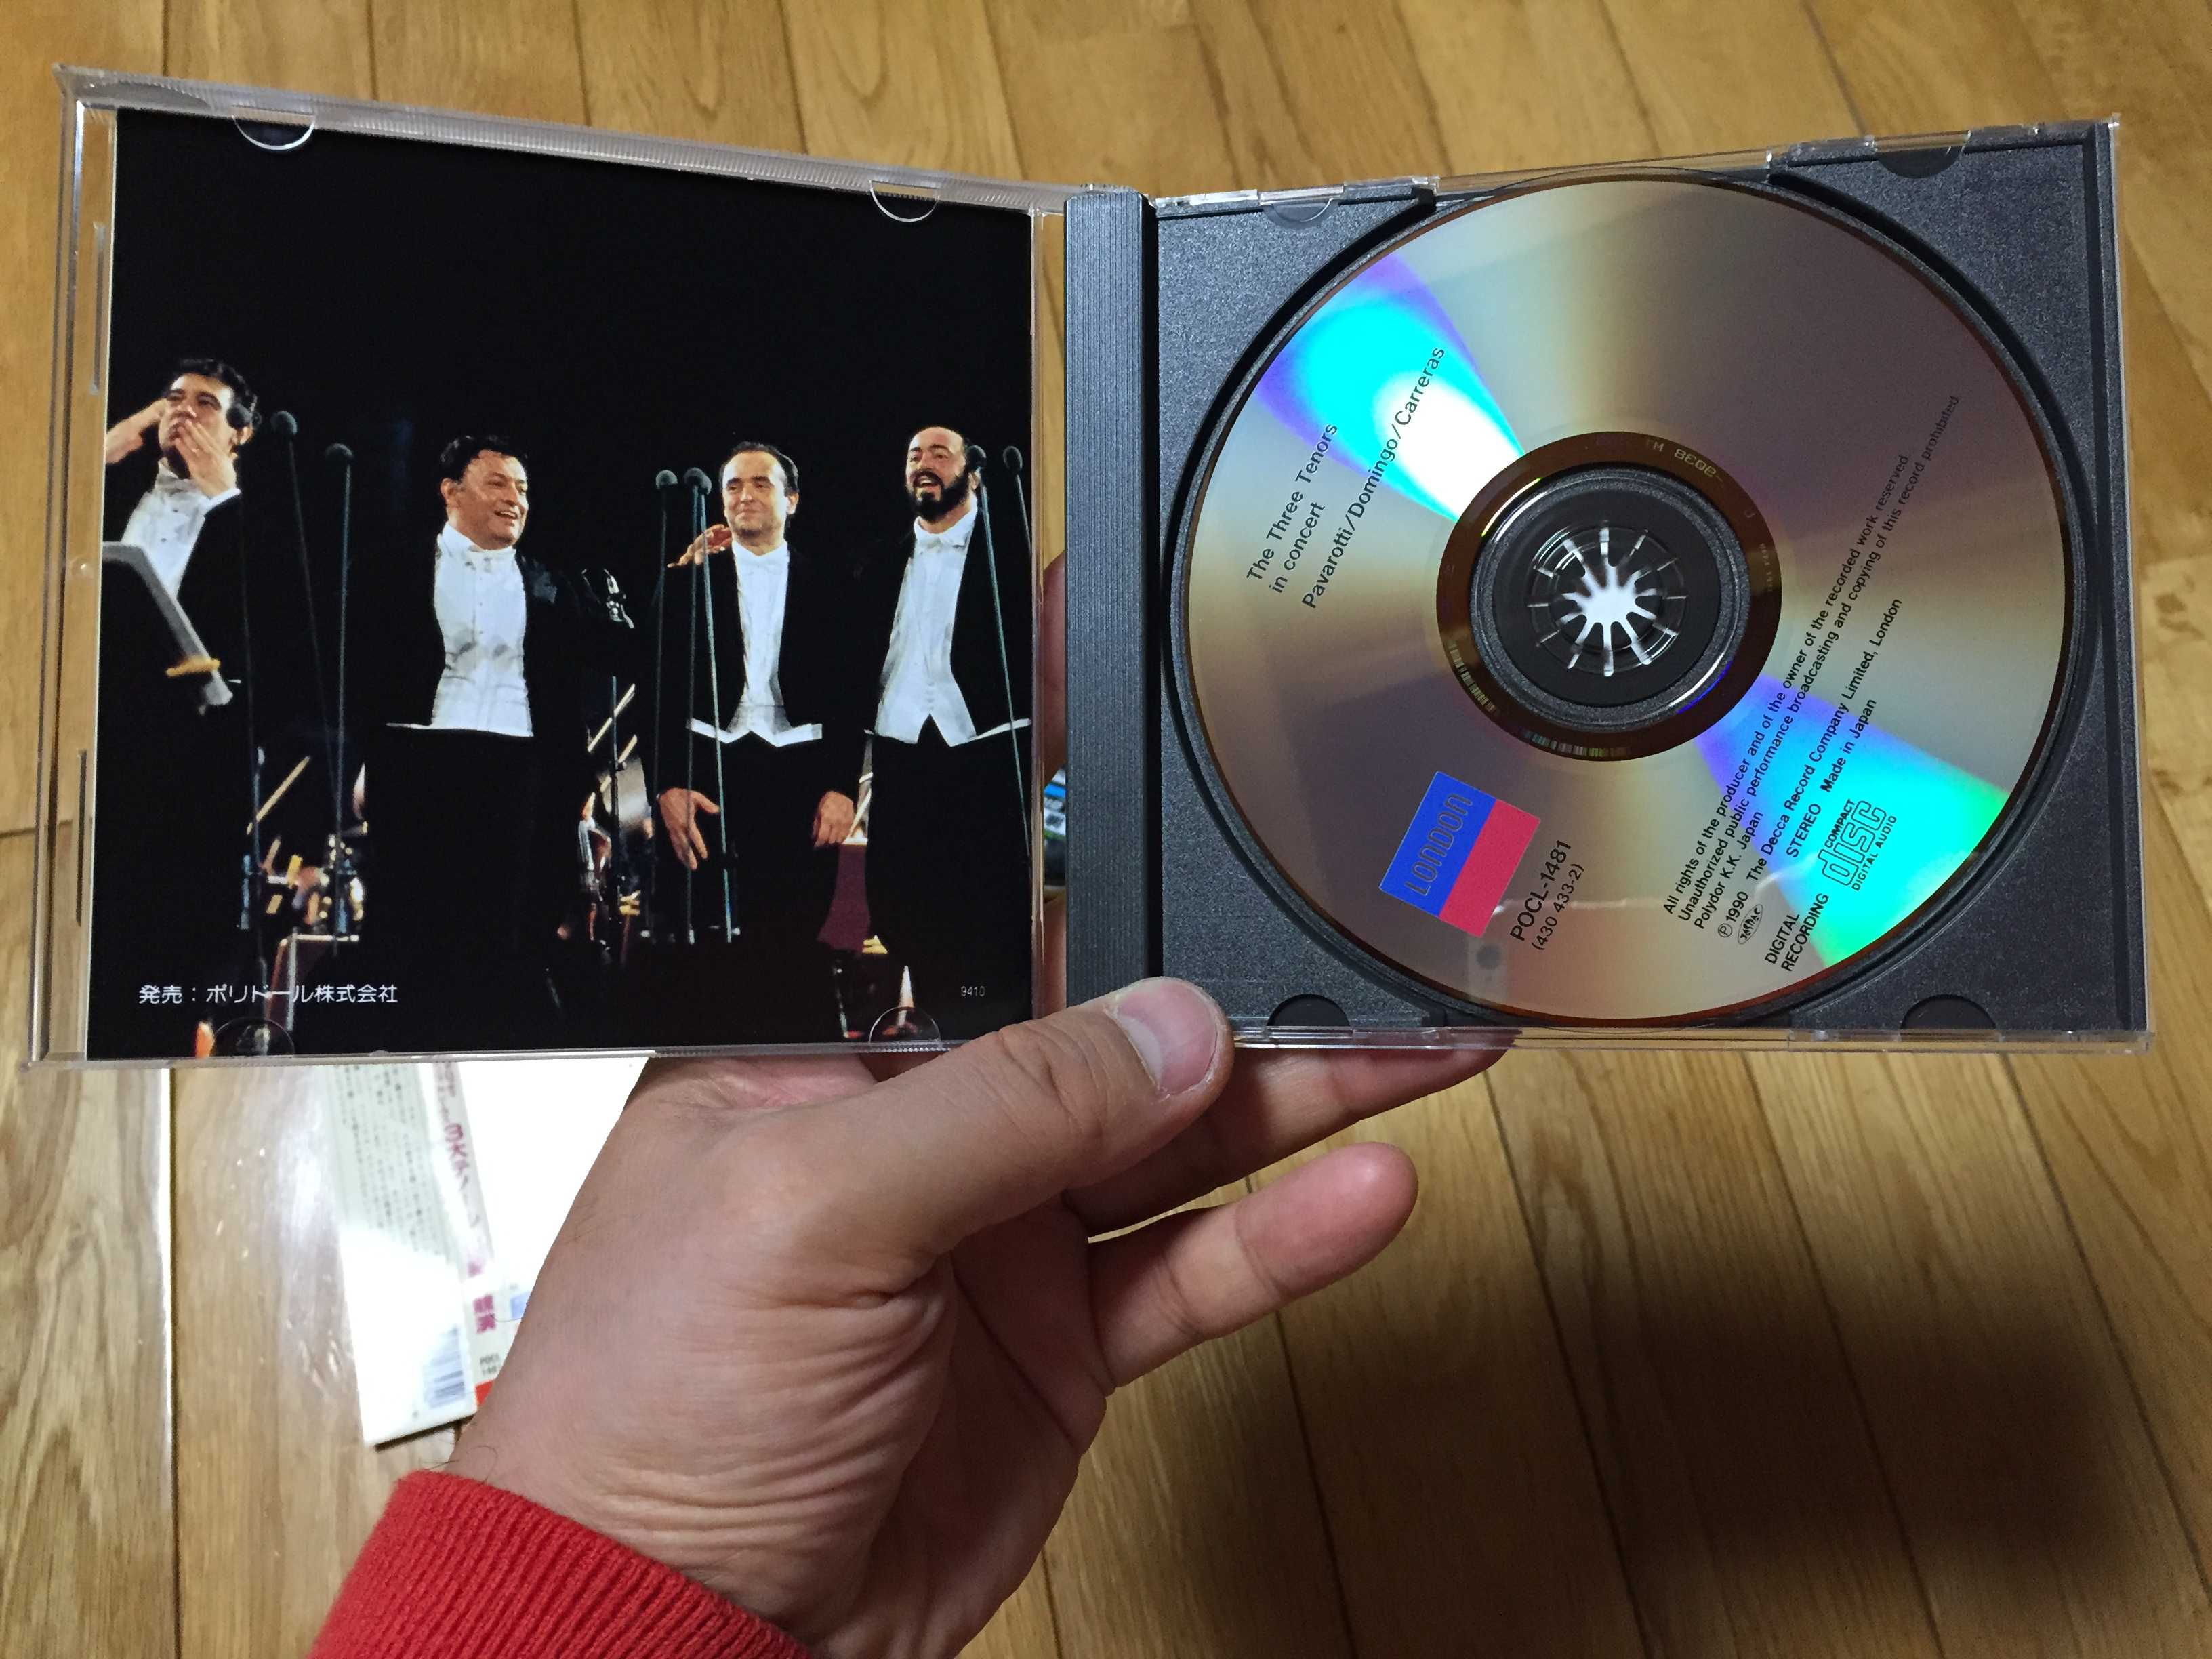 CD: The Three Tenors in concert